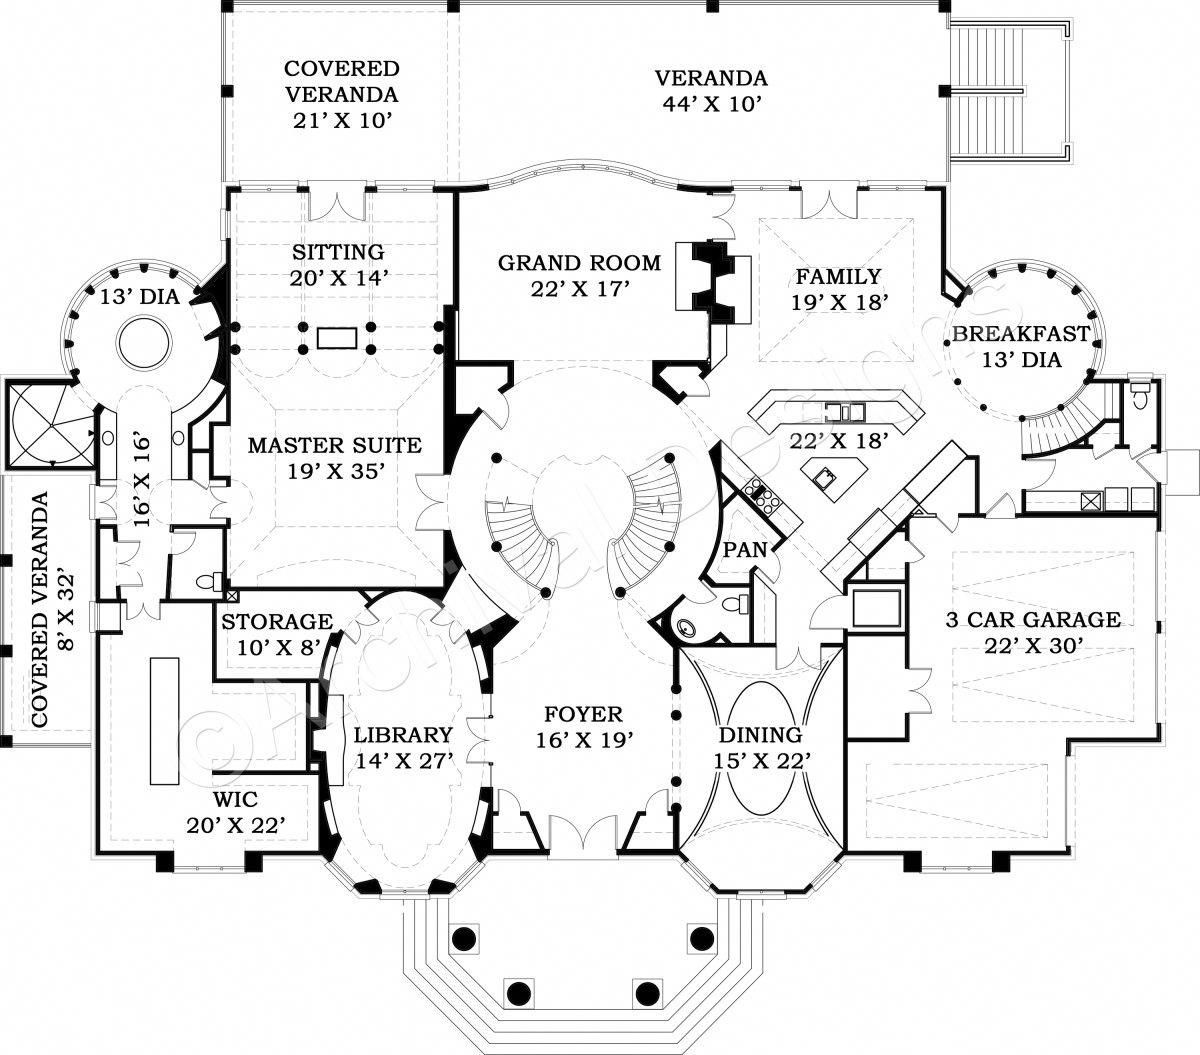 Make your own house plans online for free  Ashburton House Plan Ashburton House Plan  First Floor Plan